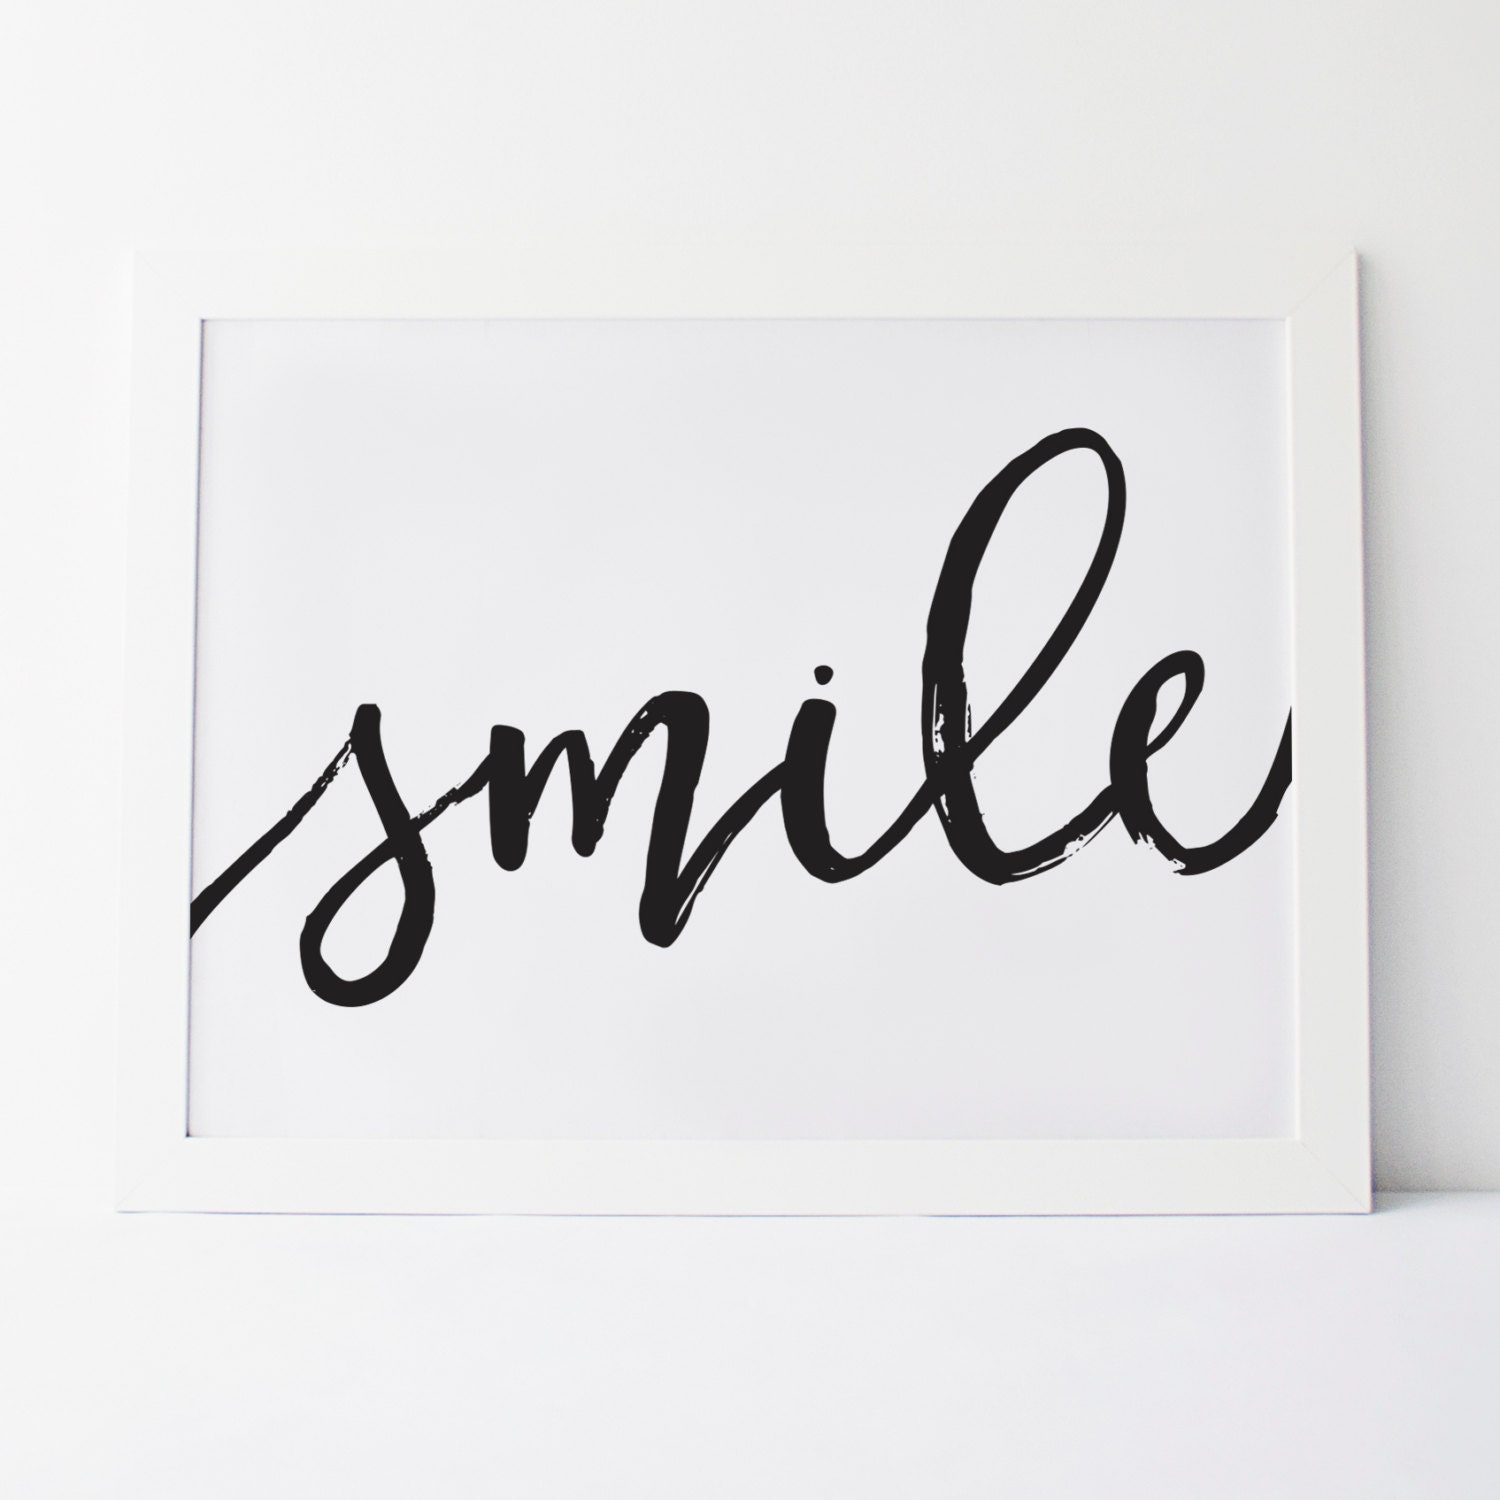 Quotes About Smiles Printable Art Smile Cursive Smile Wall Art Wall